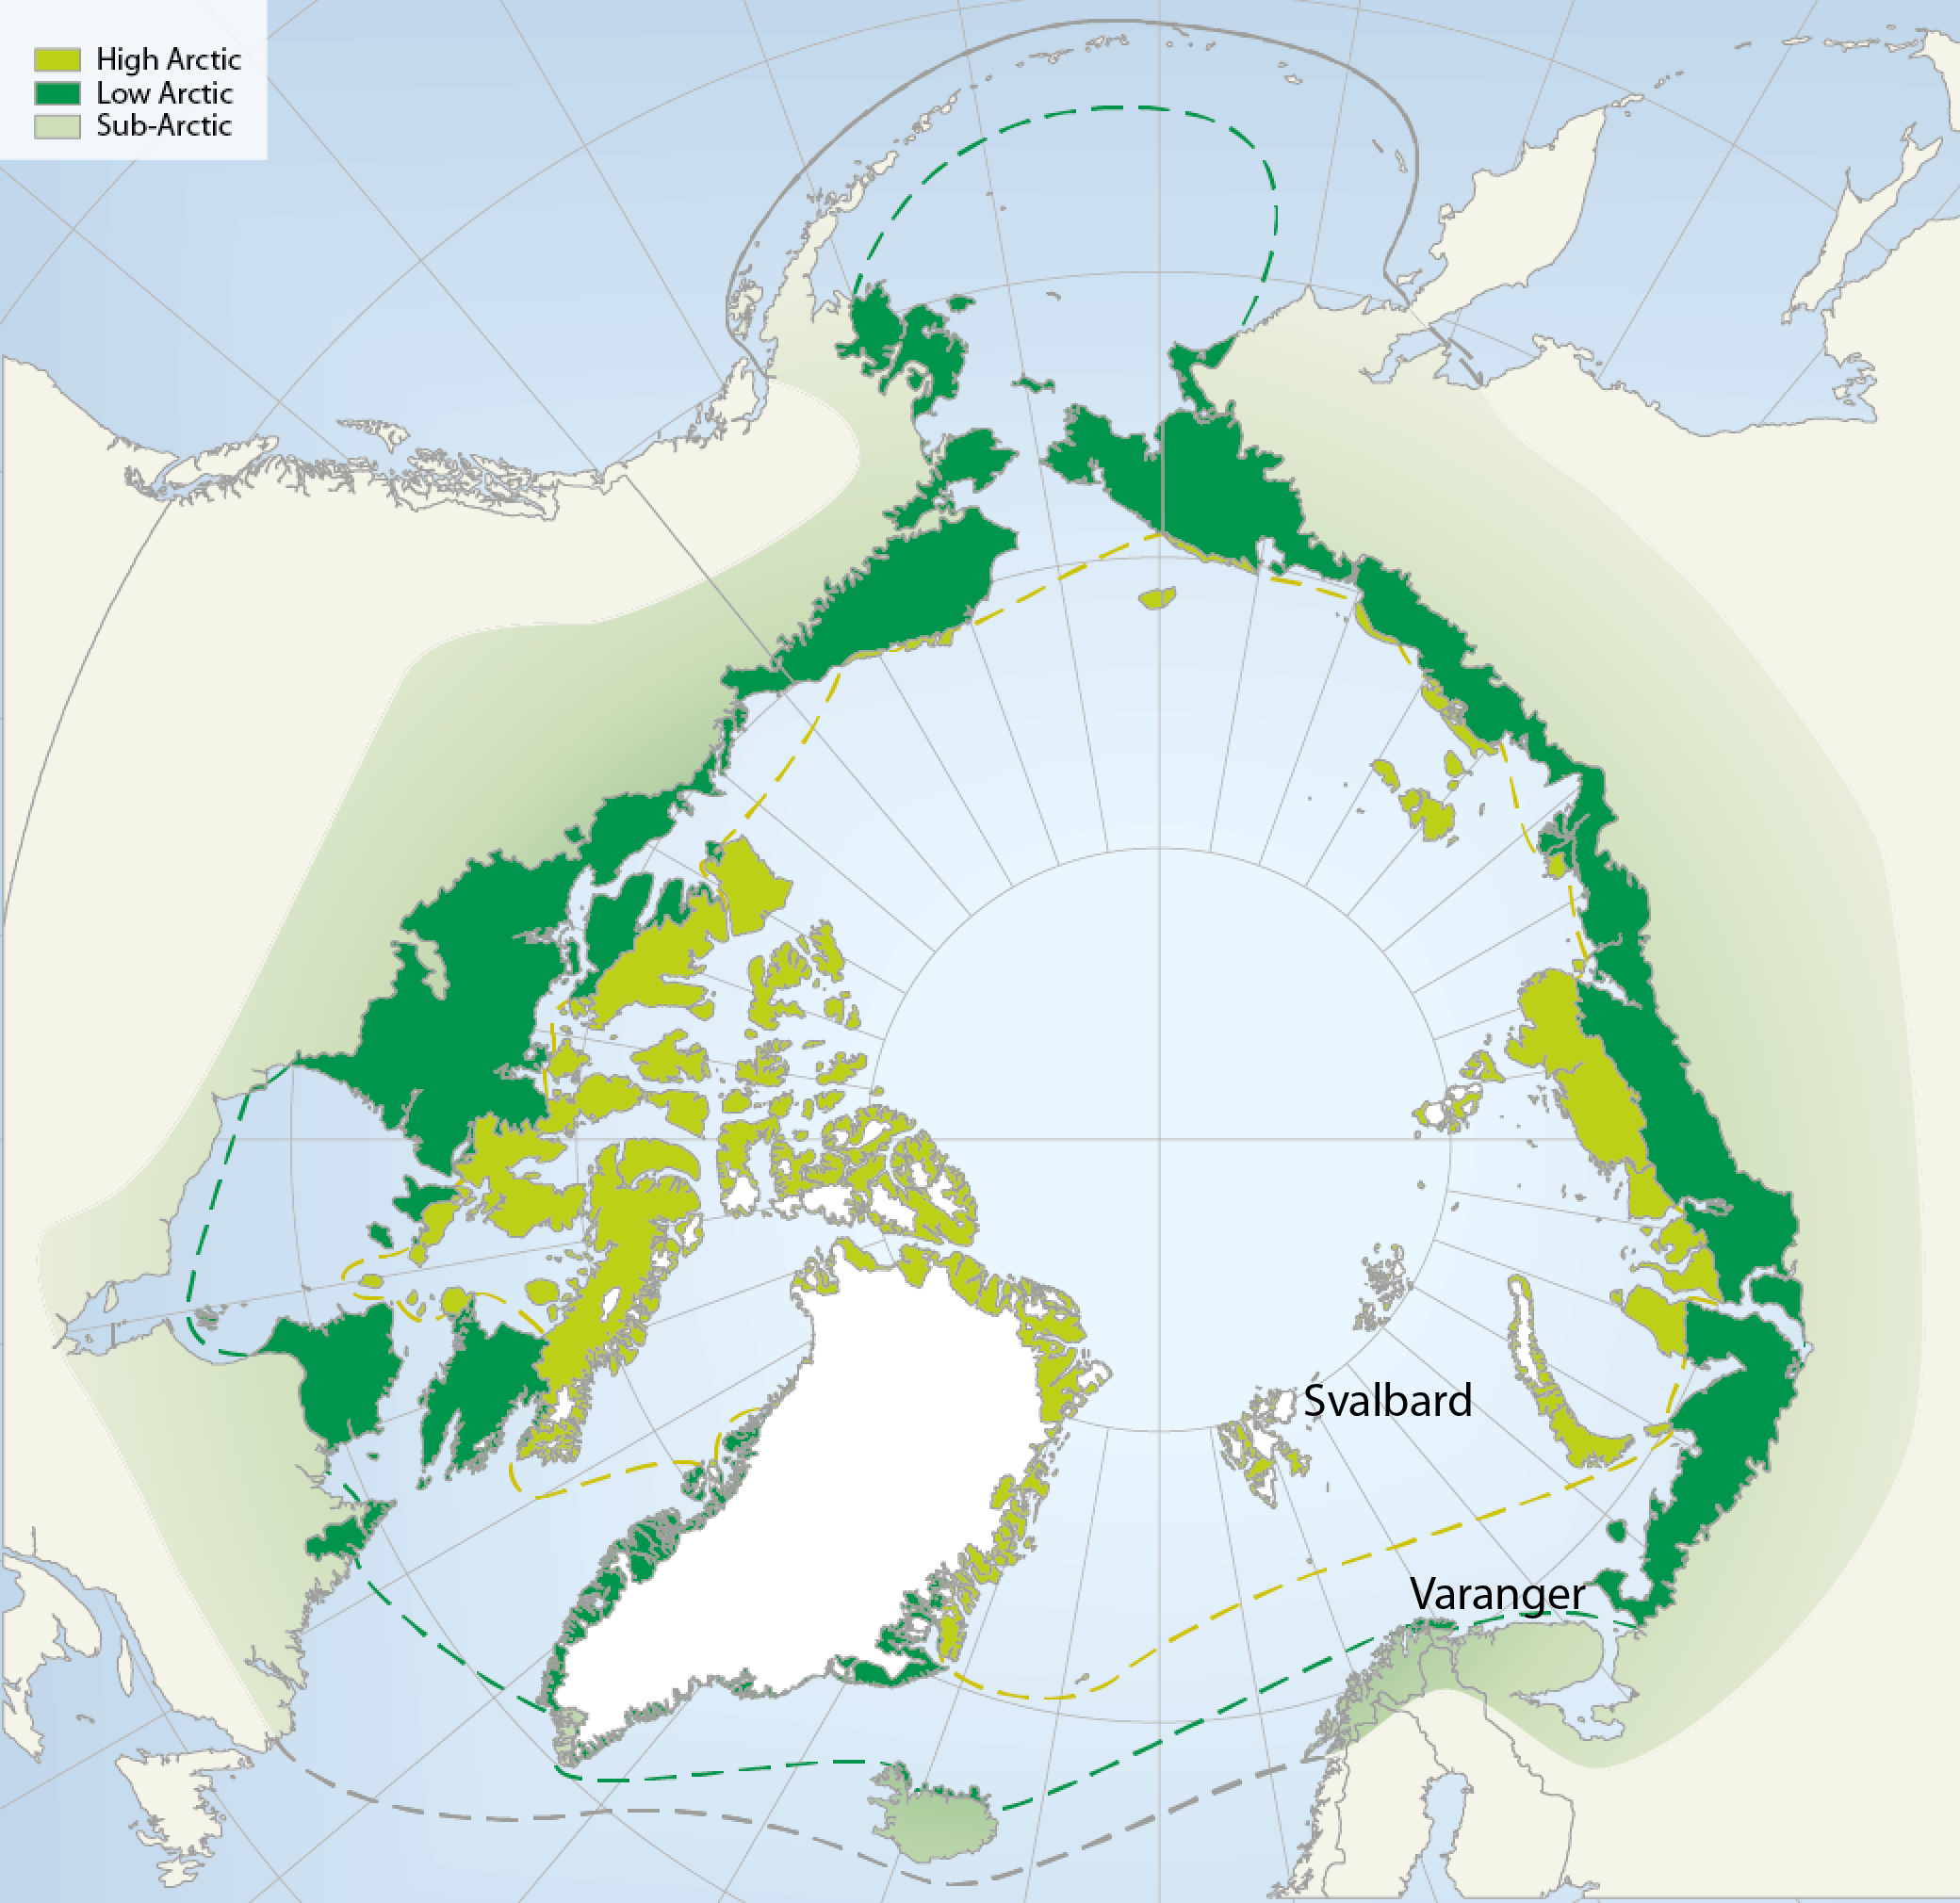 Map source: The Arctic Biodiversity Data Service